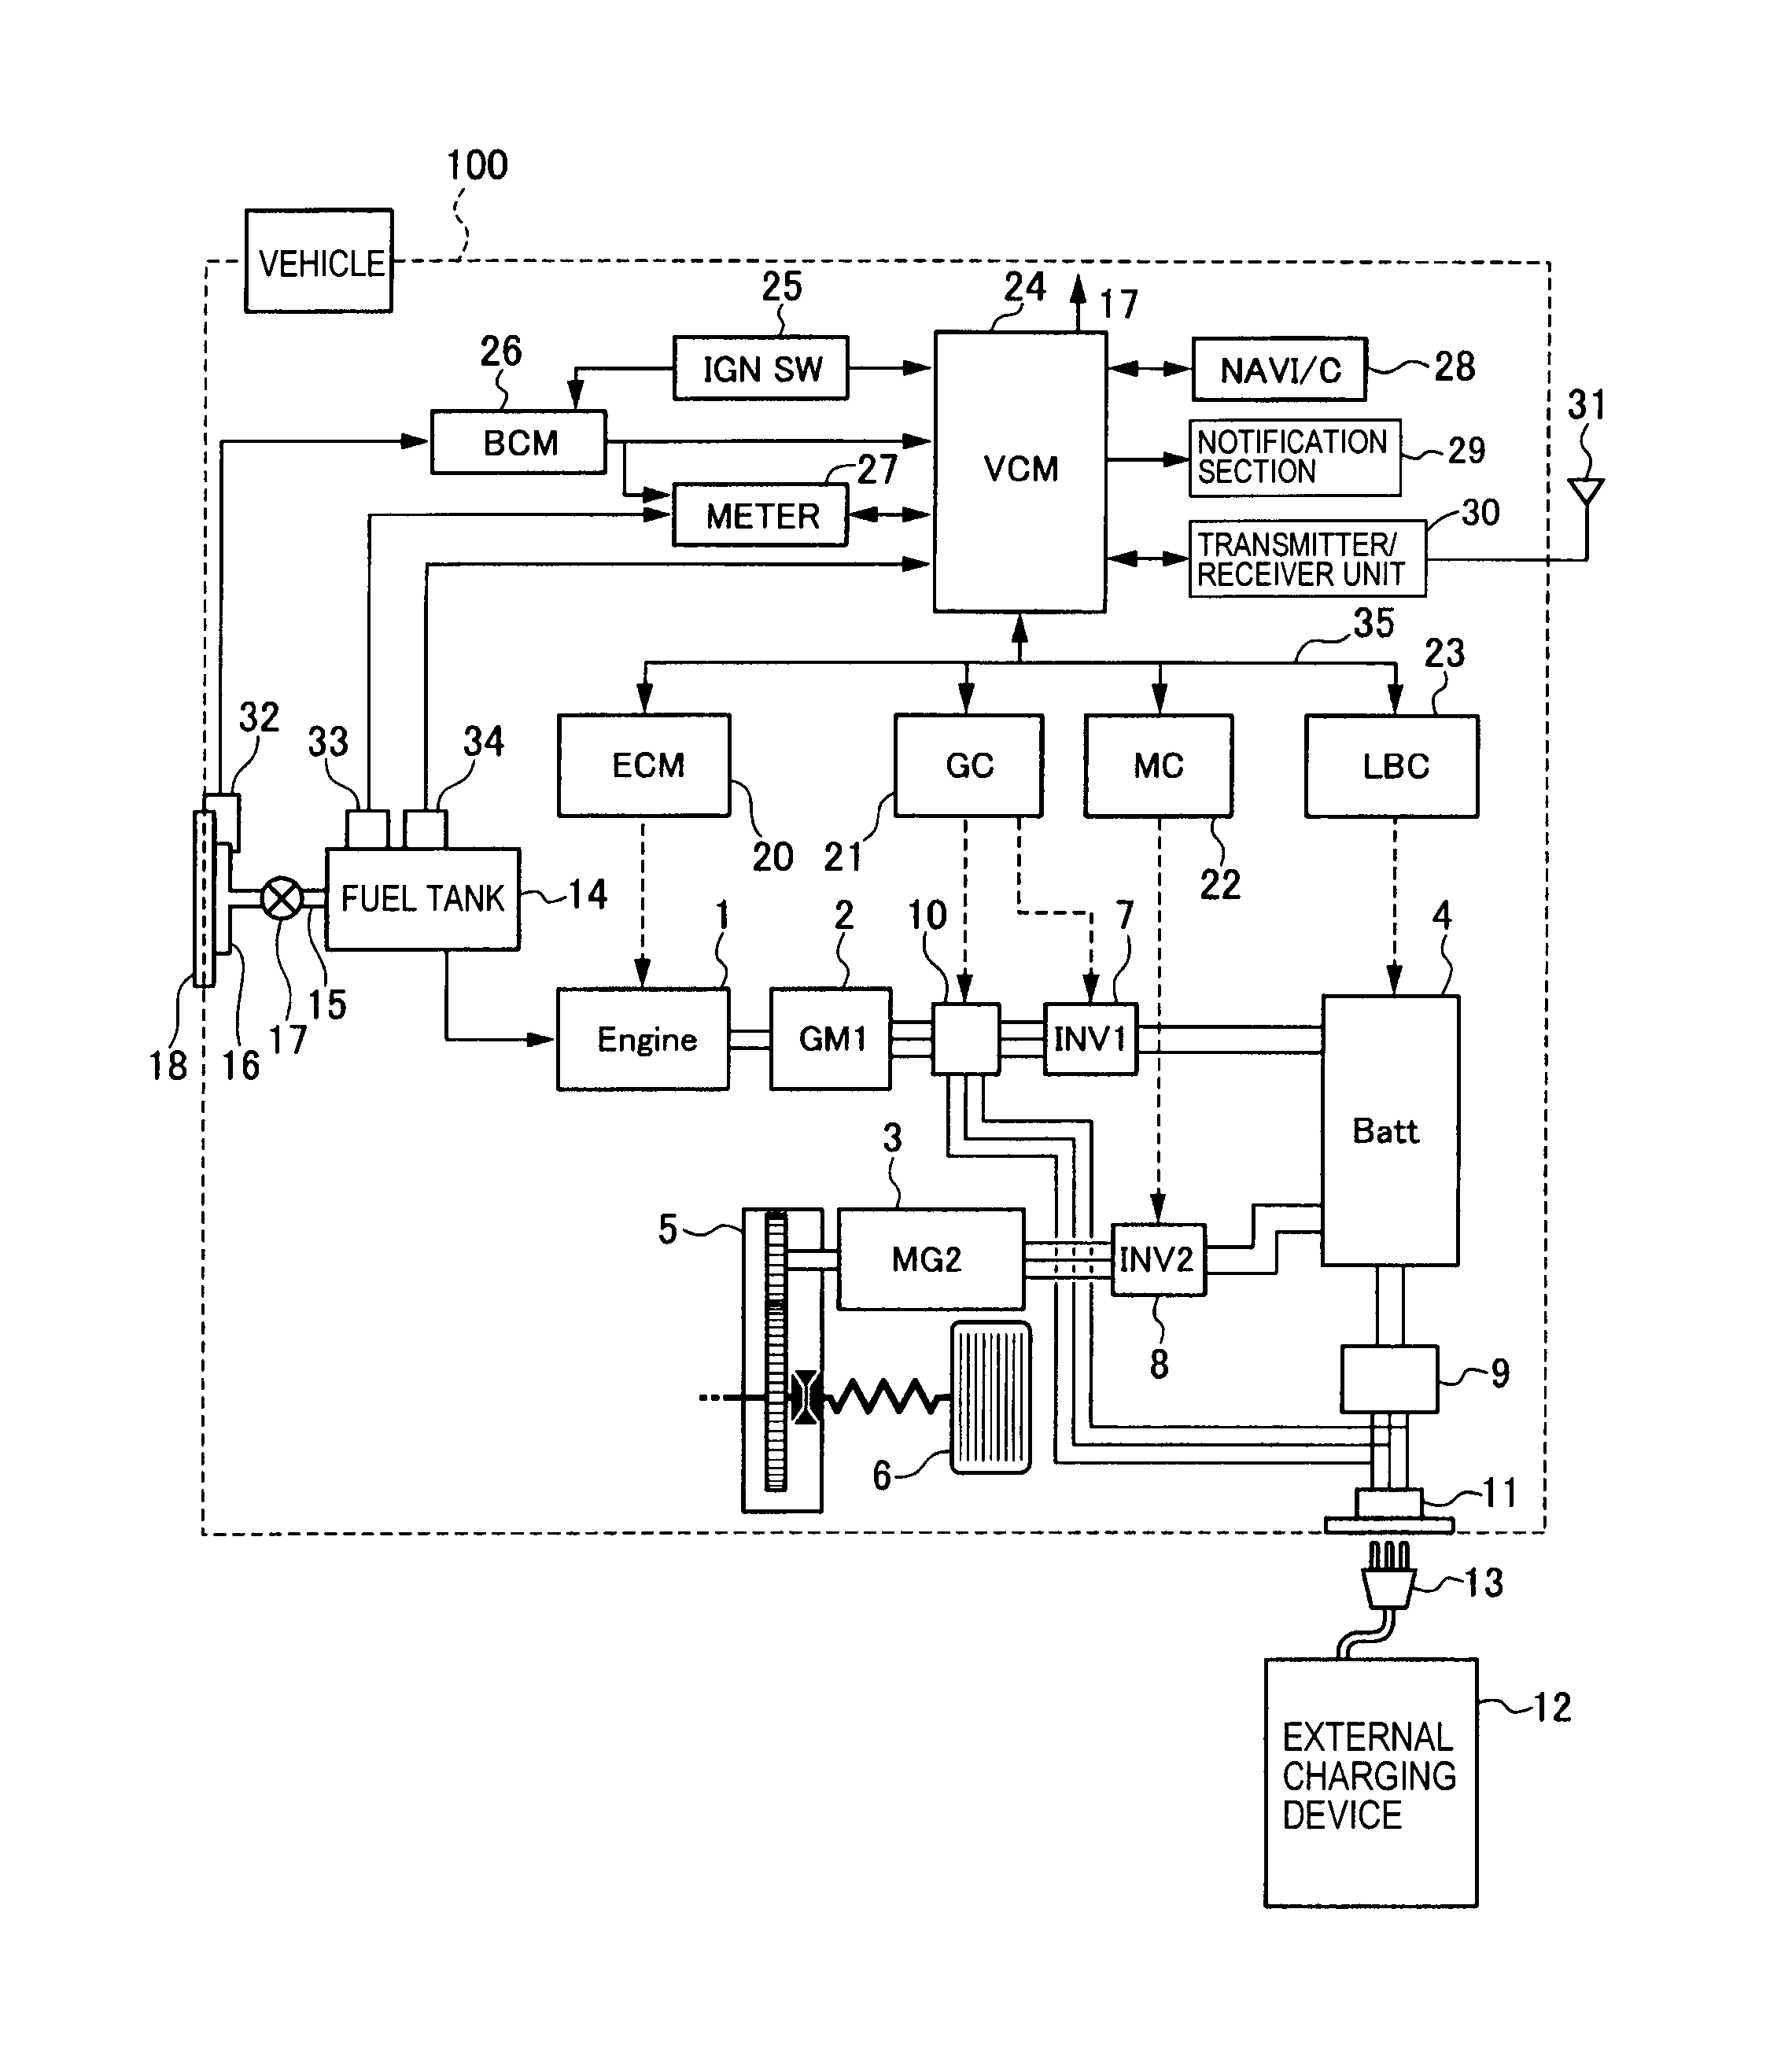 DIAGRAM] Pioneer Deh P6700mp Wiring Diagram FULL Version HD Quality Wiring  Diagram - KITPROGSCHEMATIC8127.BEAUTYWELL.ITkitprogschematic8127.beautywell.it